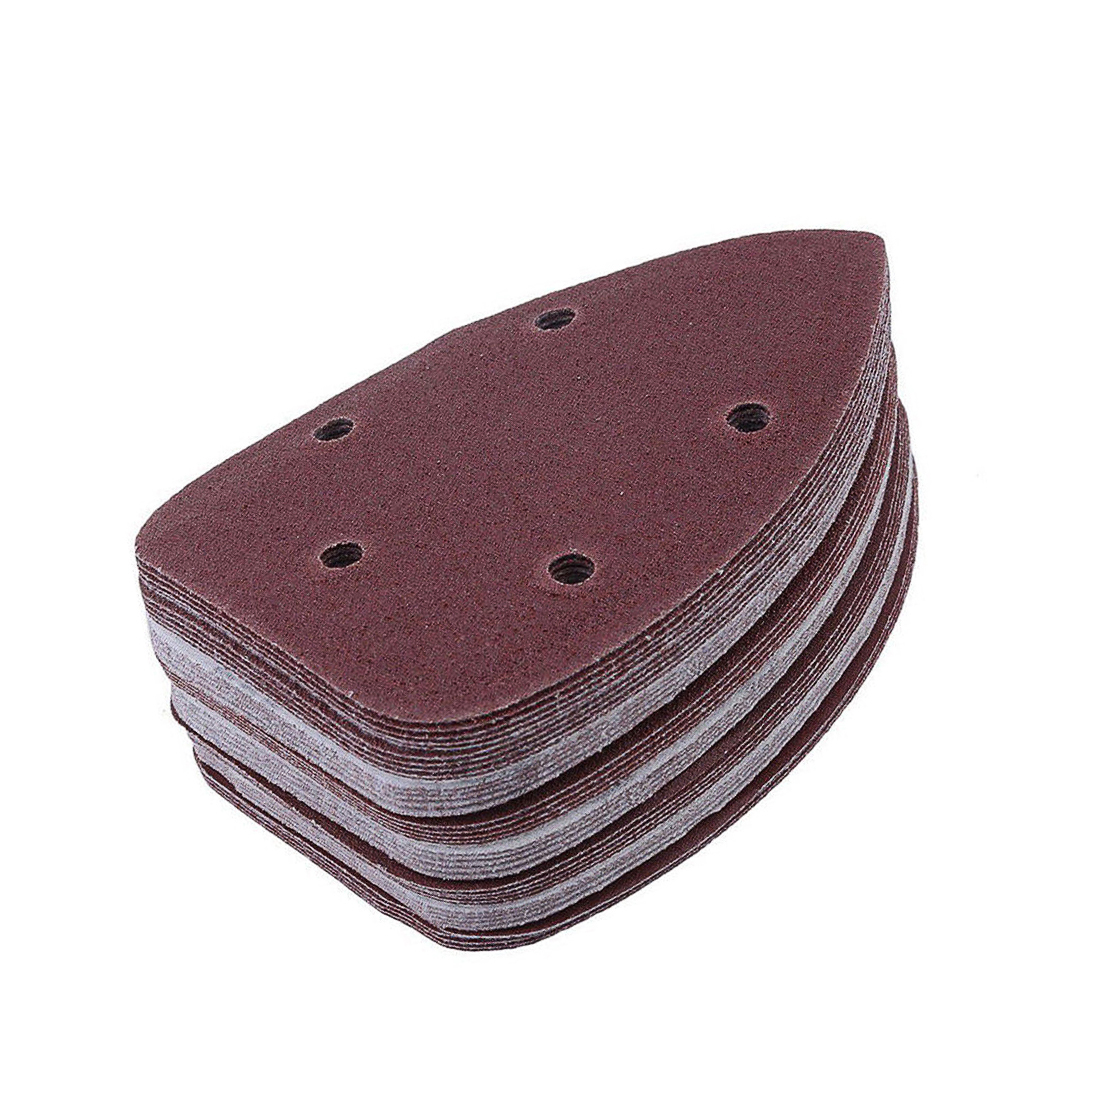 SHINA 50pcs Sandpaper 1000 Grit Triangle Sanding Disc Sheet Sand Paper Pad Set For Fein Oscillating